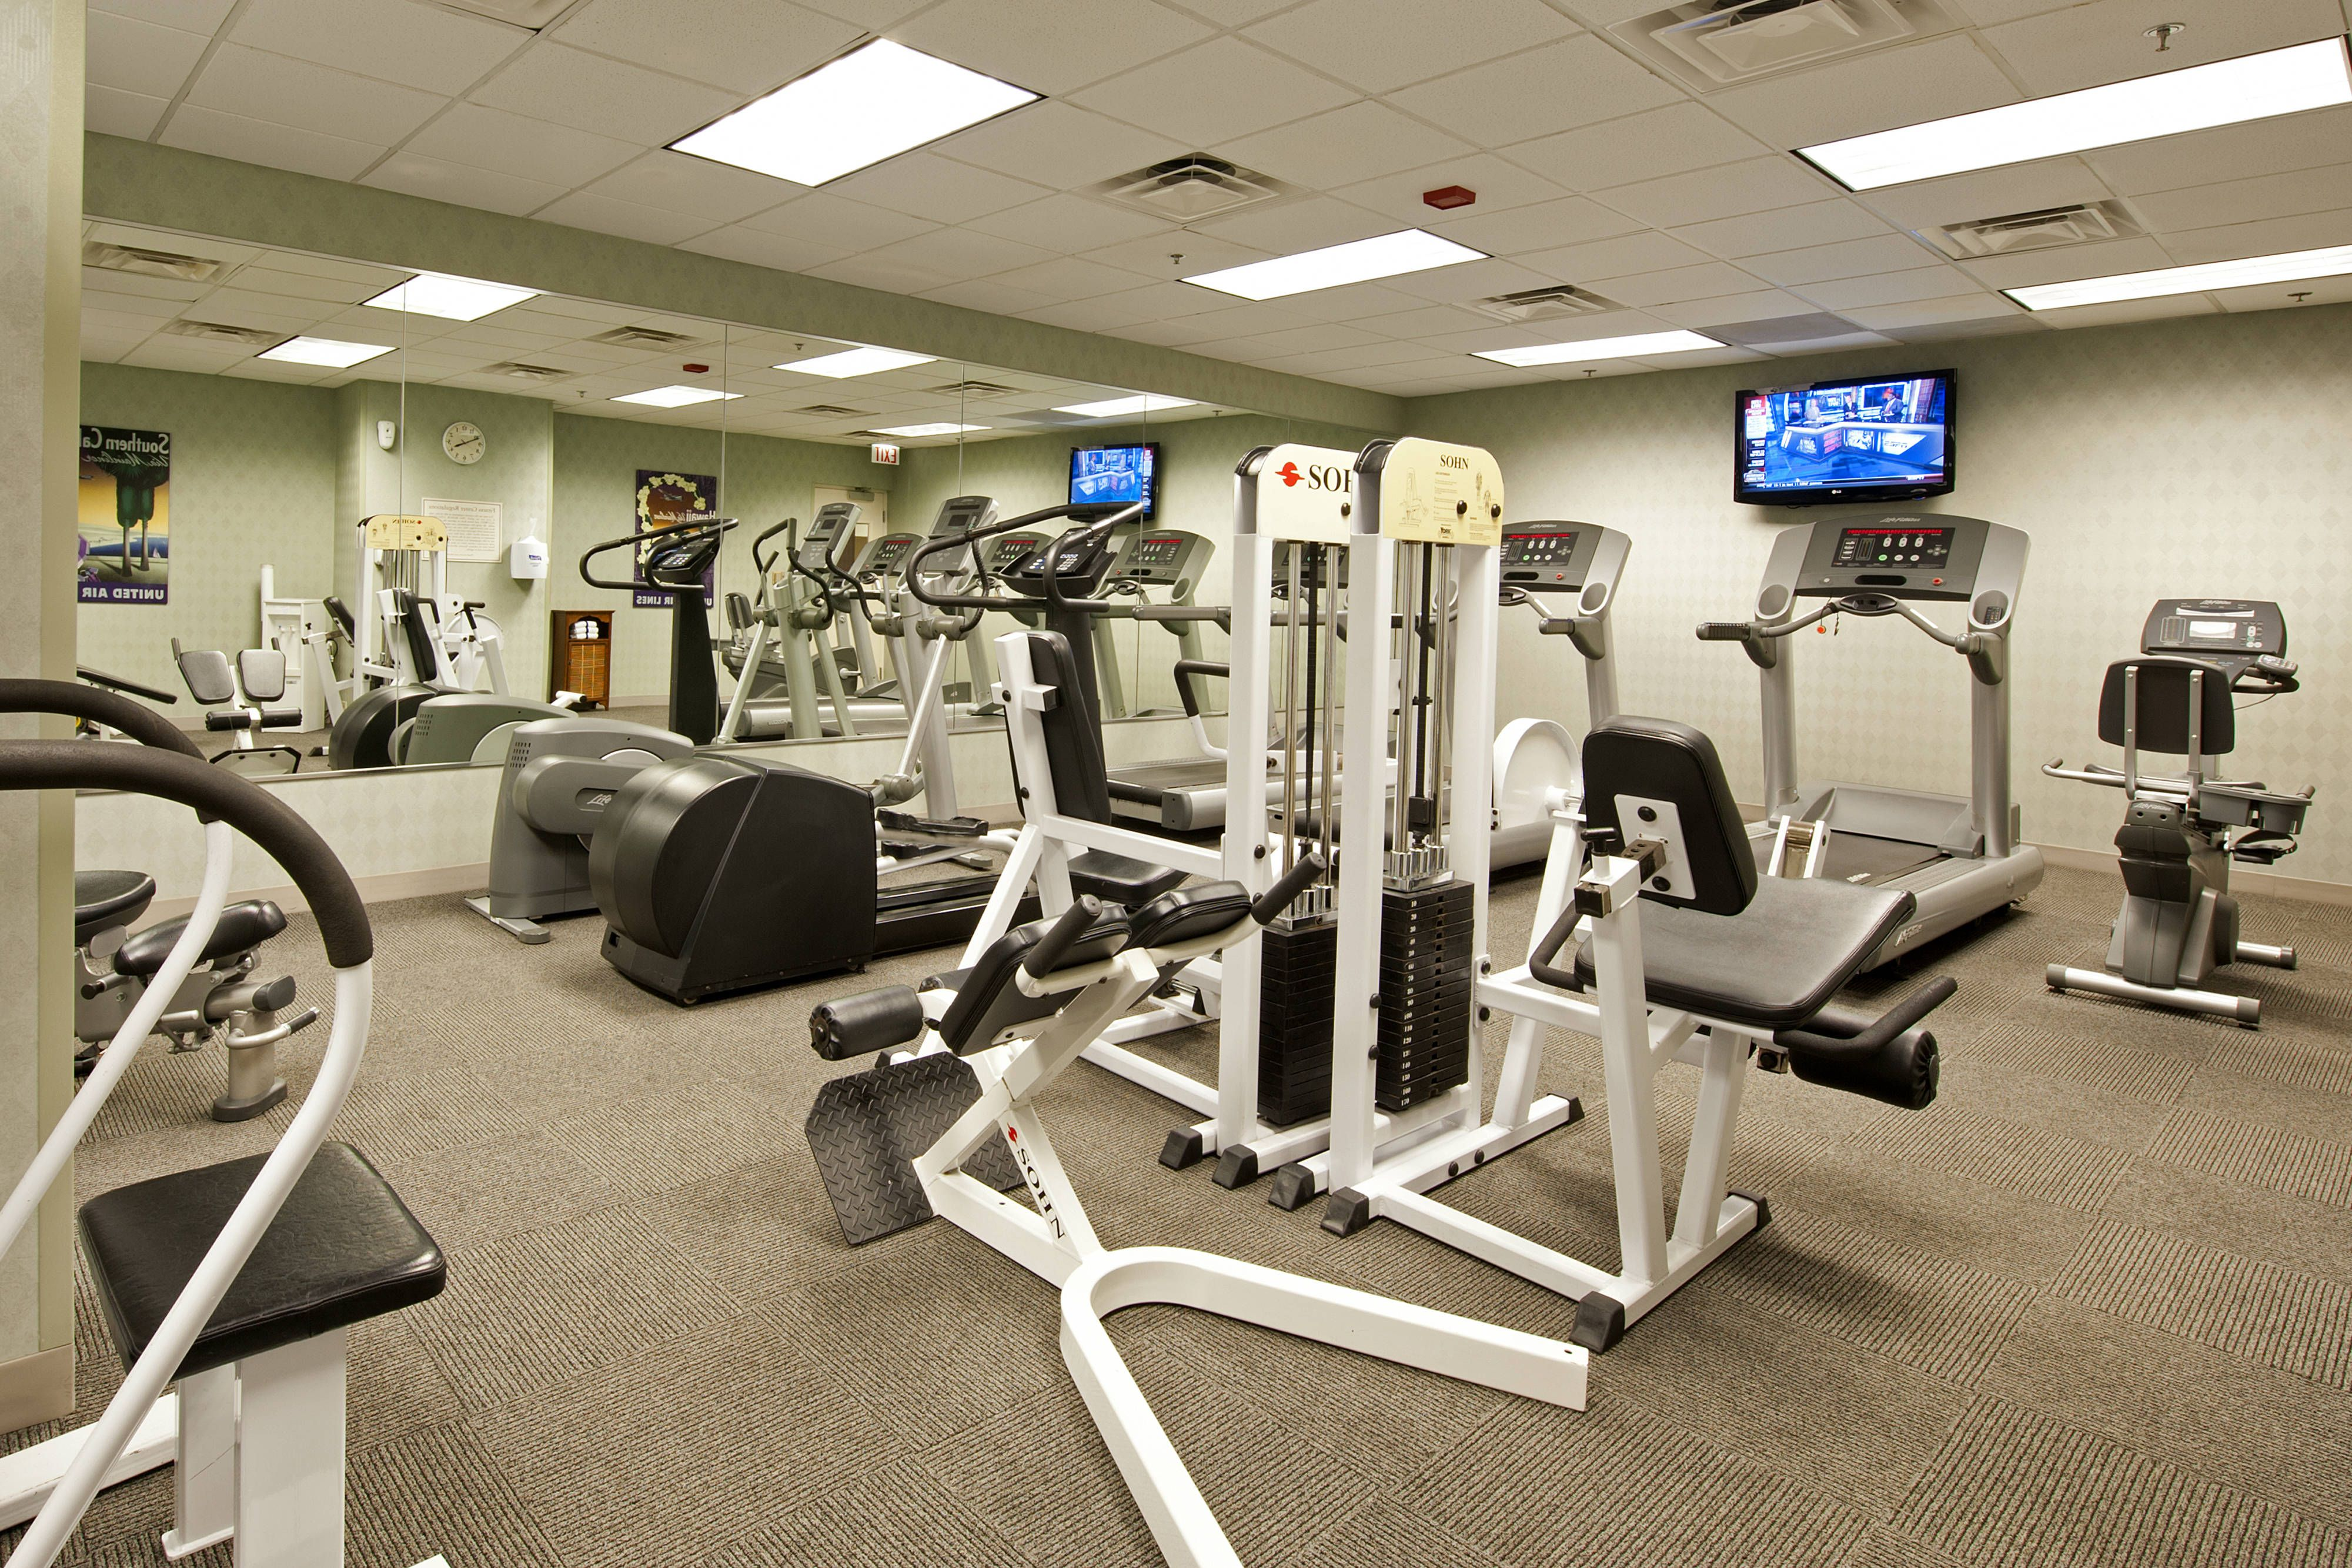 Springhill Suites Chicago O Hare Fitness Center Hotels Guest Holiday Springhill Suites Hotel